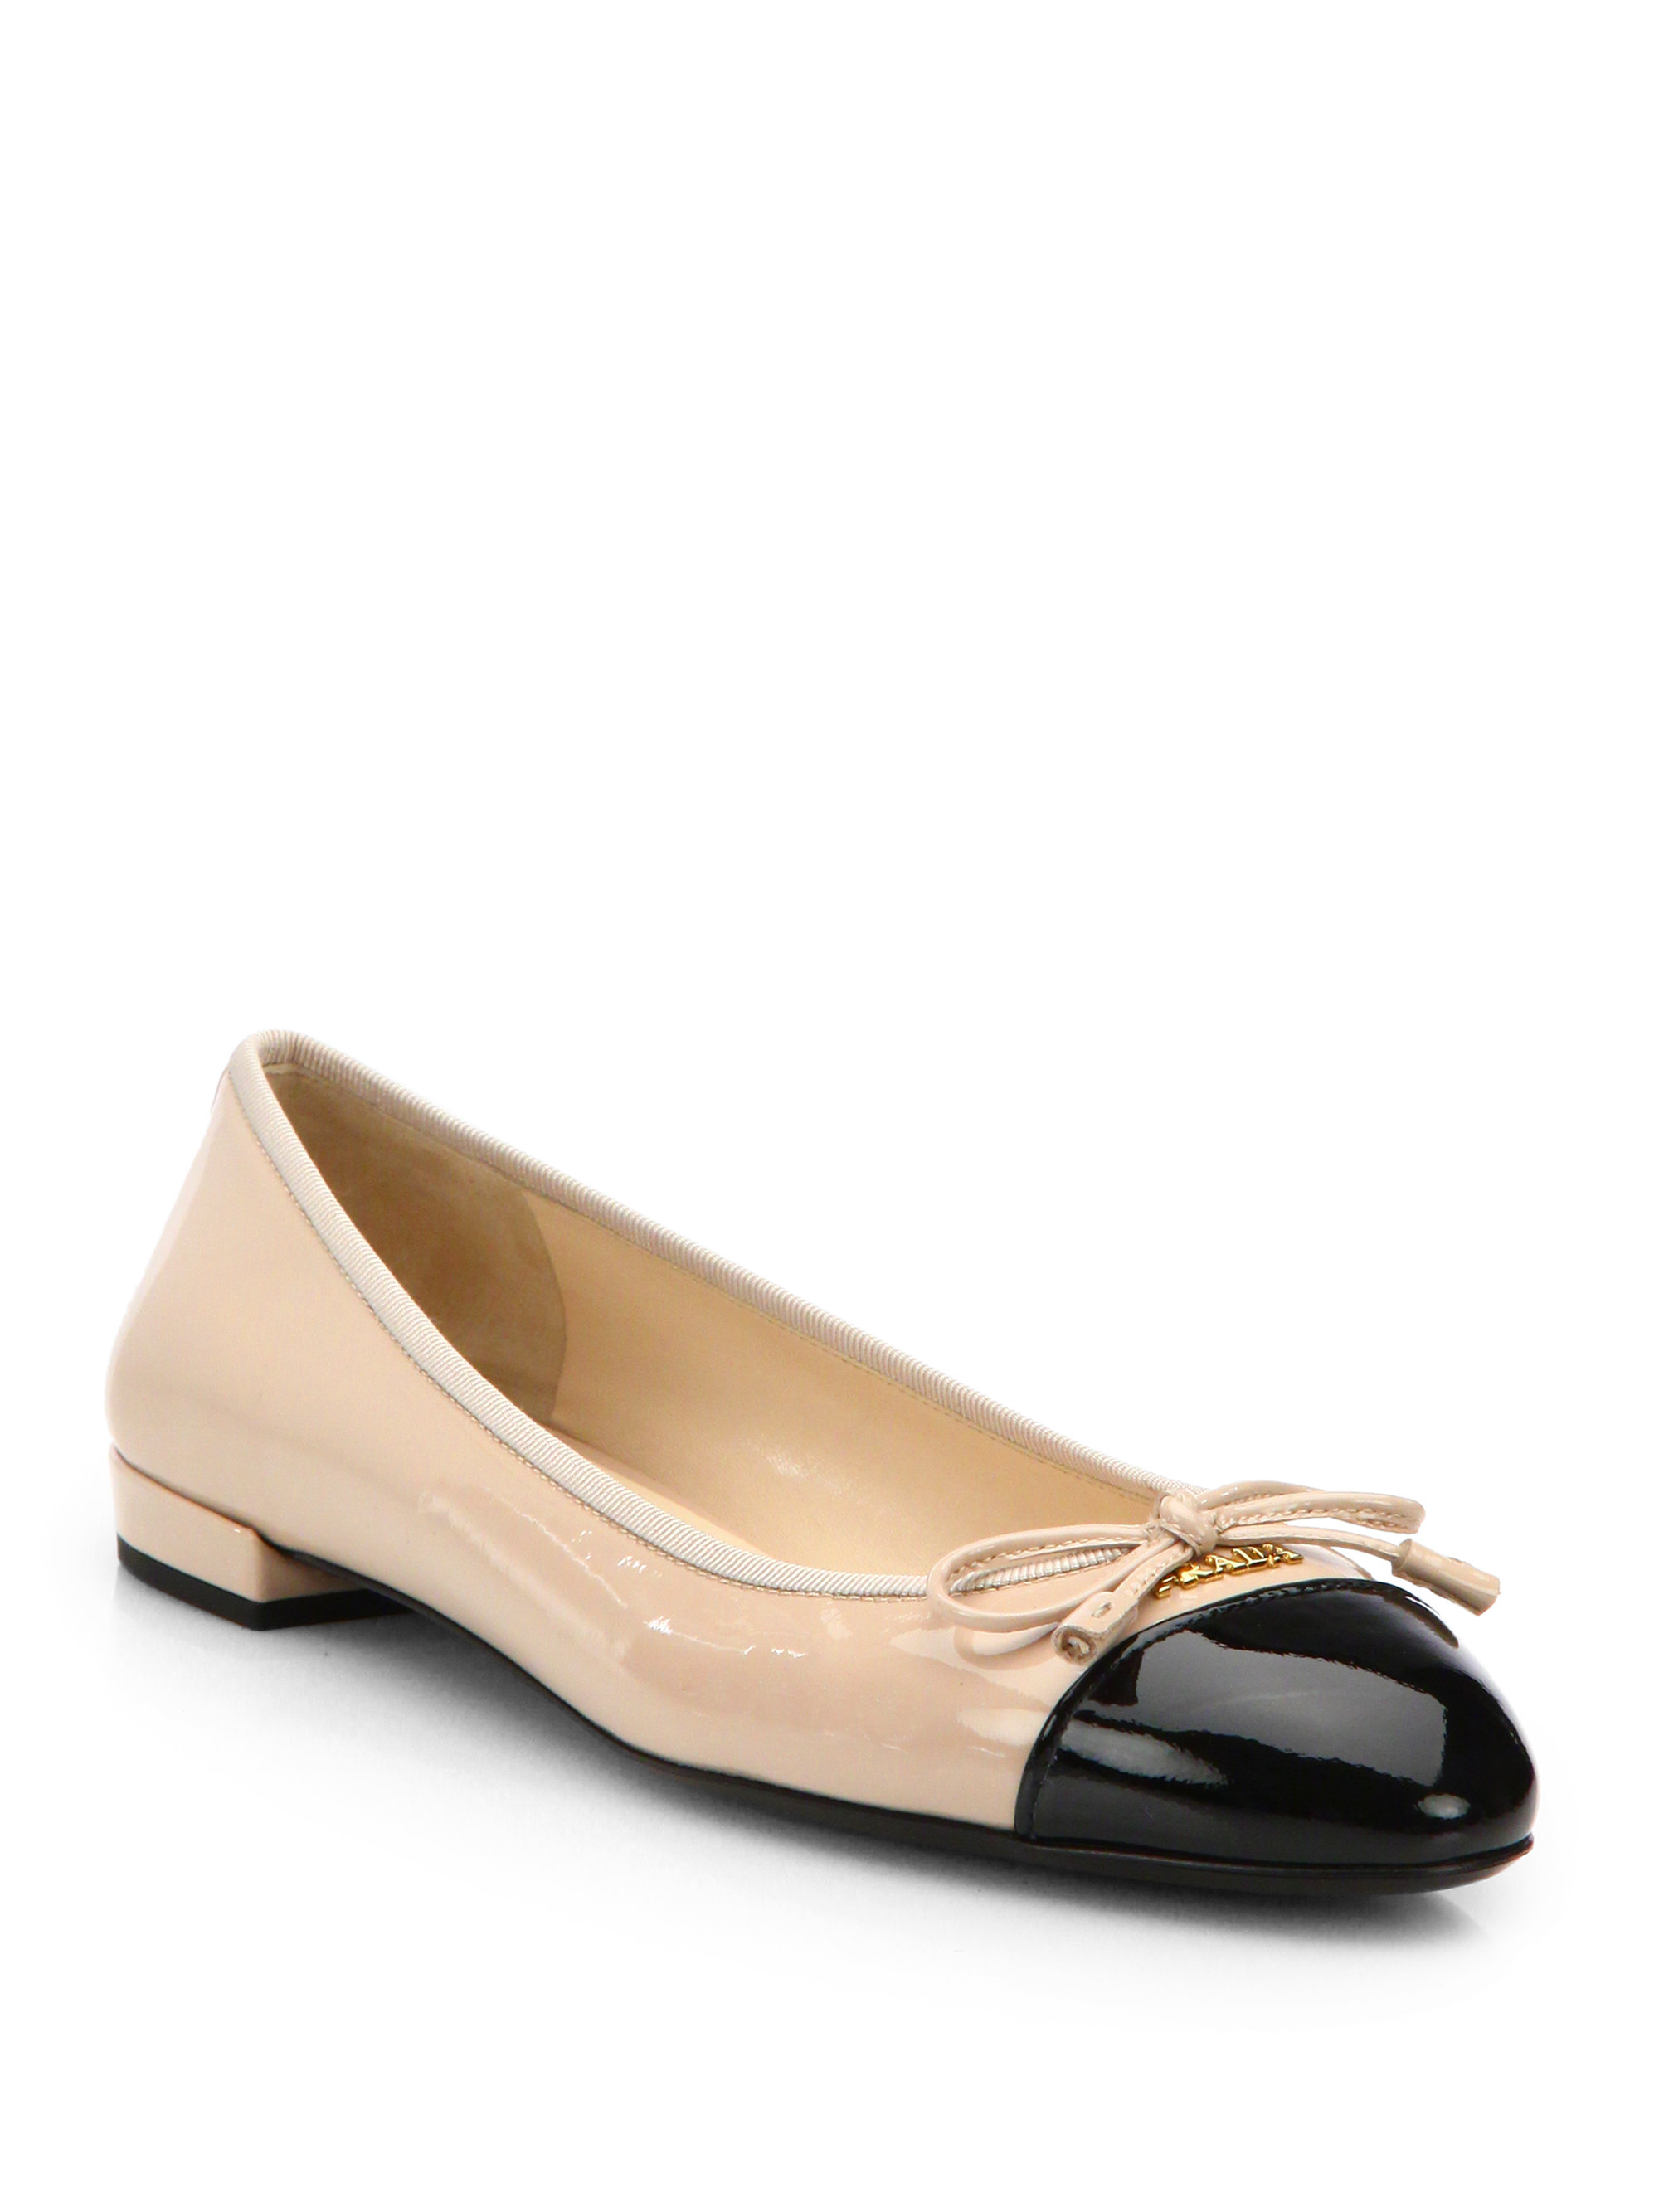 Lyst - Prada Patent Leather Cap-Toe Ballet Flats in Black 07f186b6bbf3